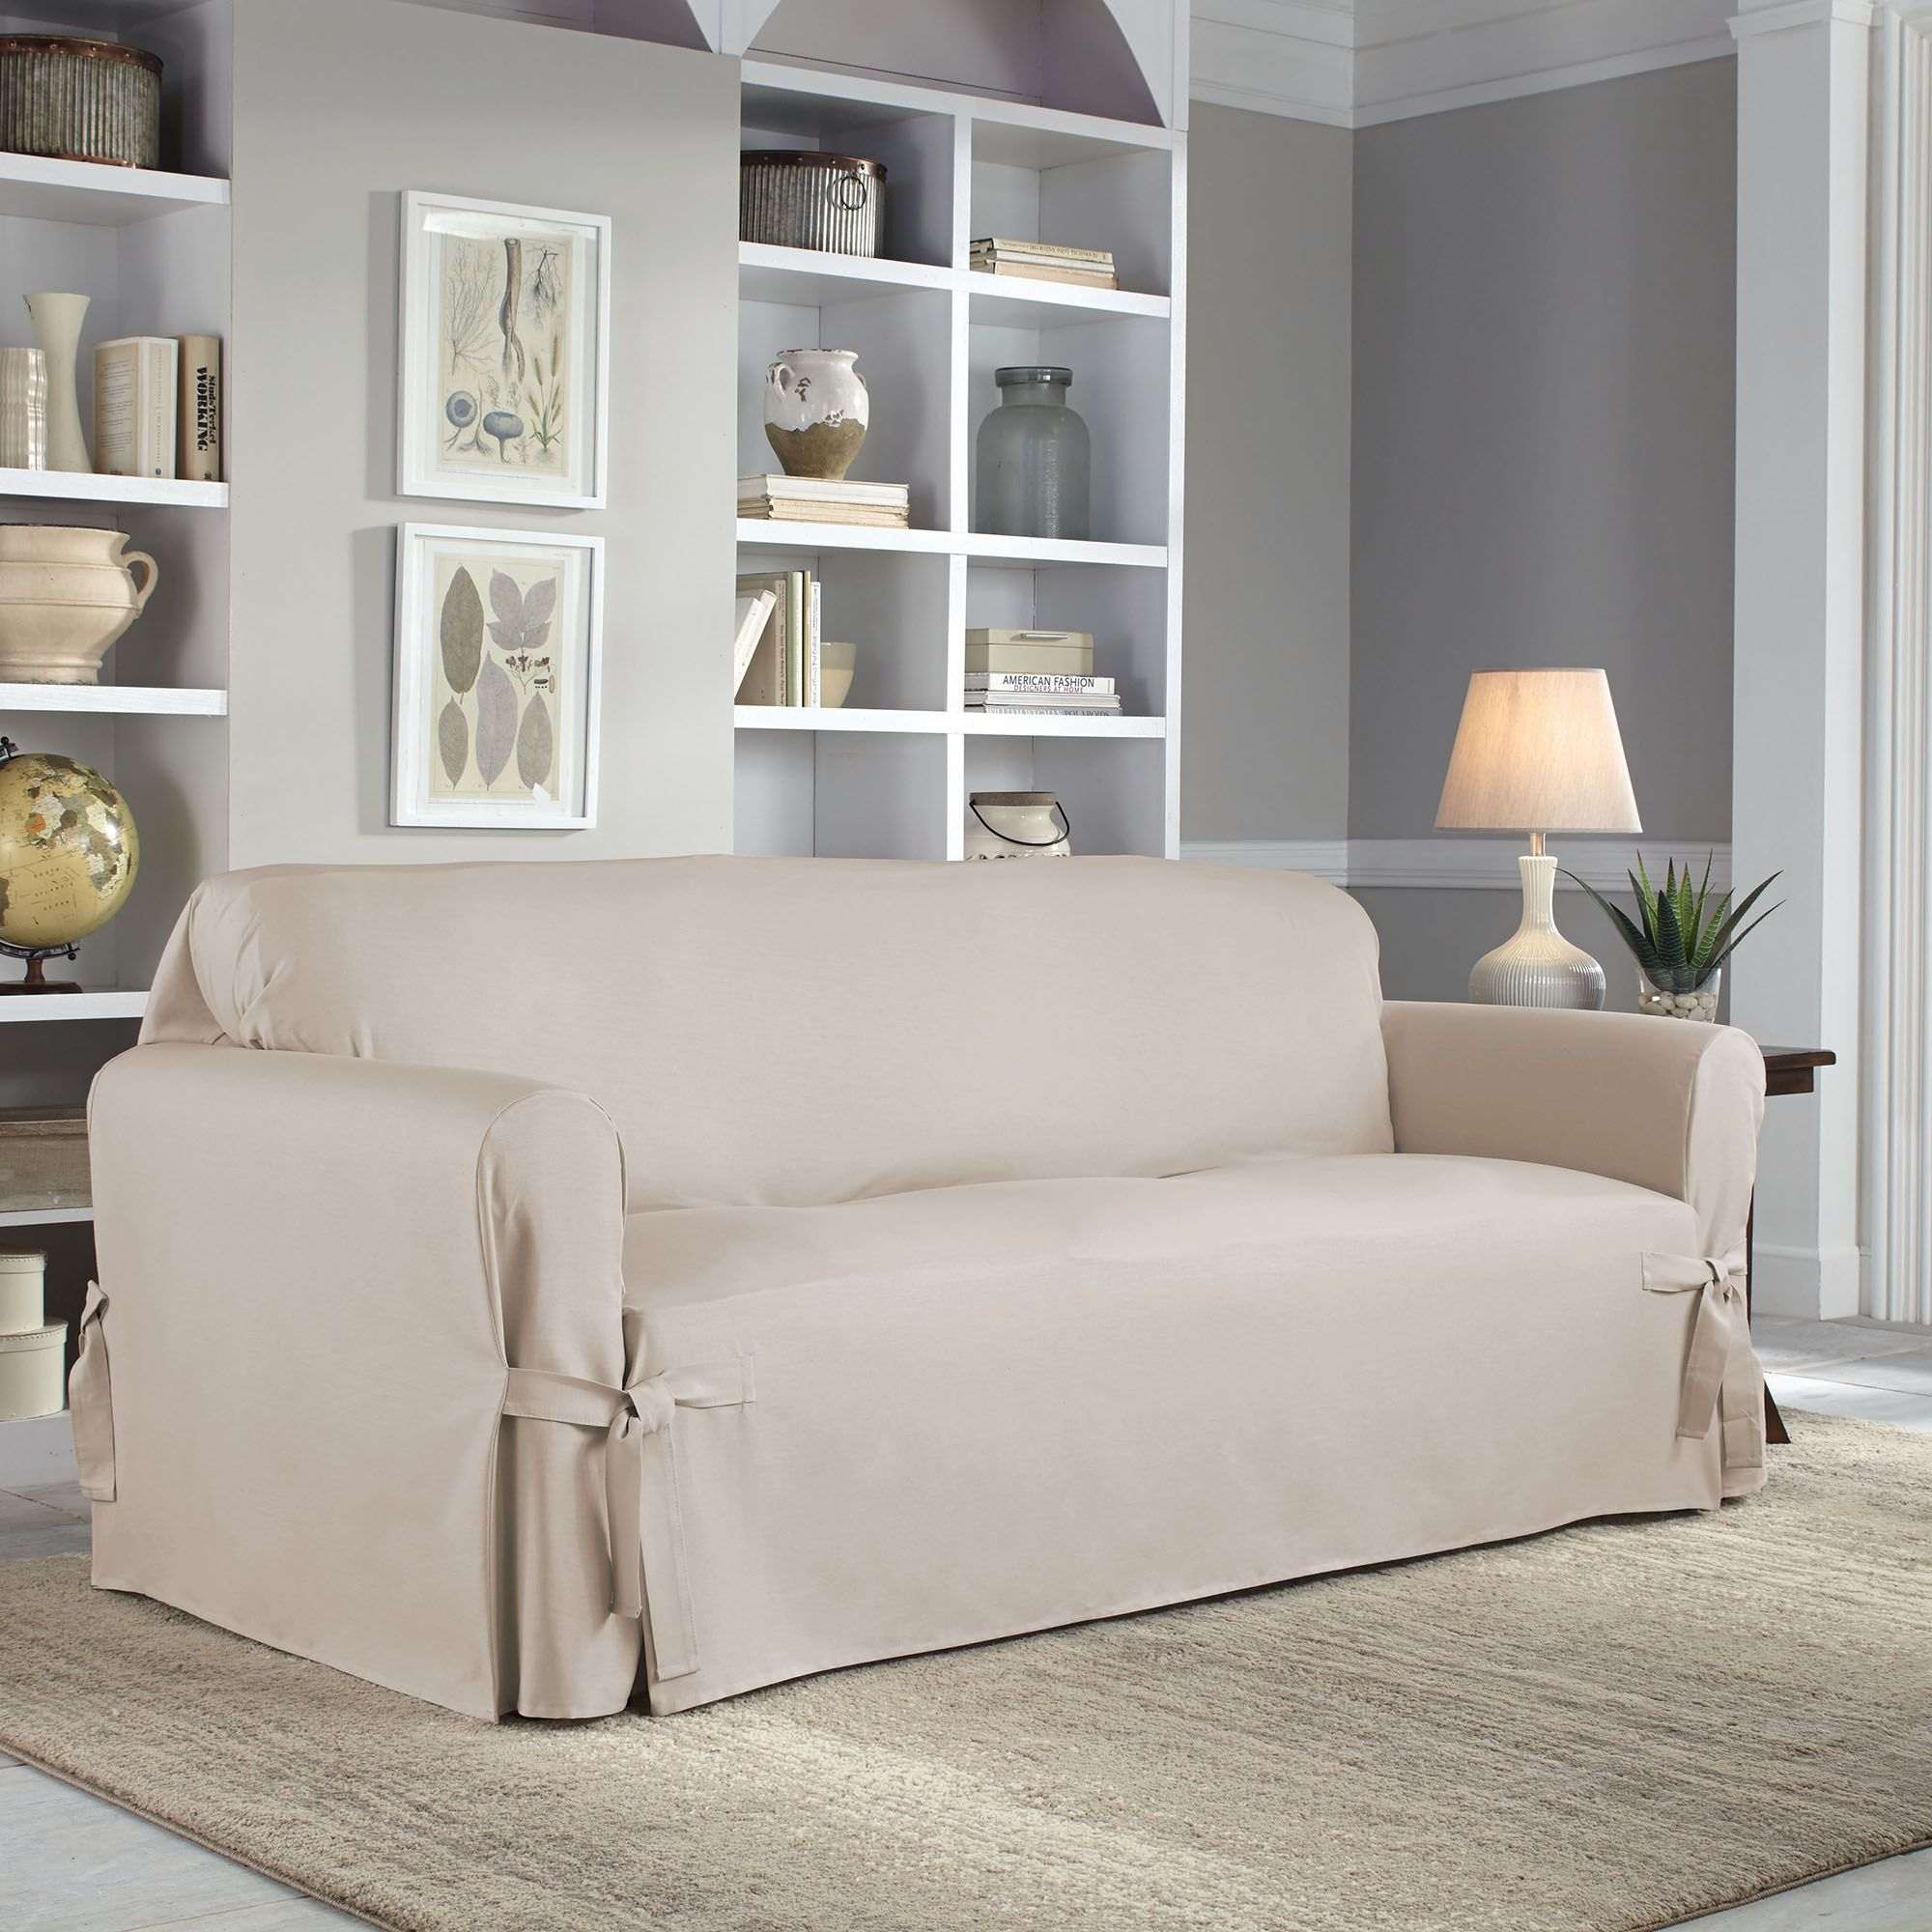 Perfect Fit Classic Relaxed Fit Sofa Slipcover Bed Bath & Beyond